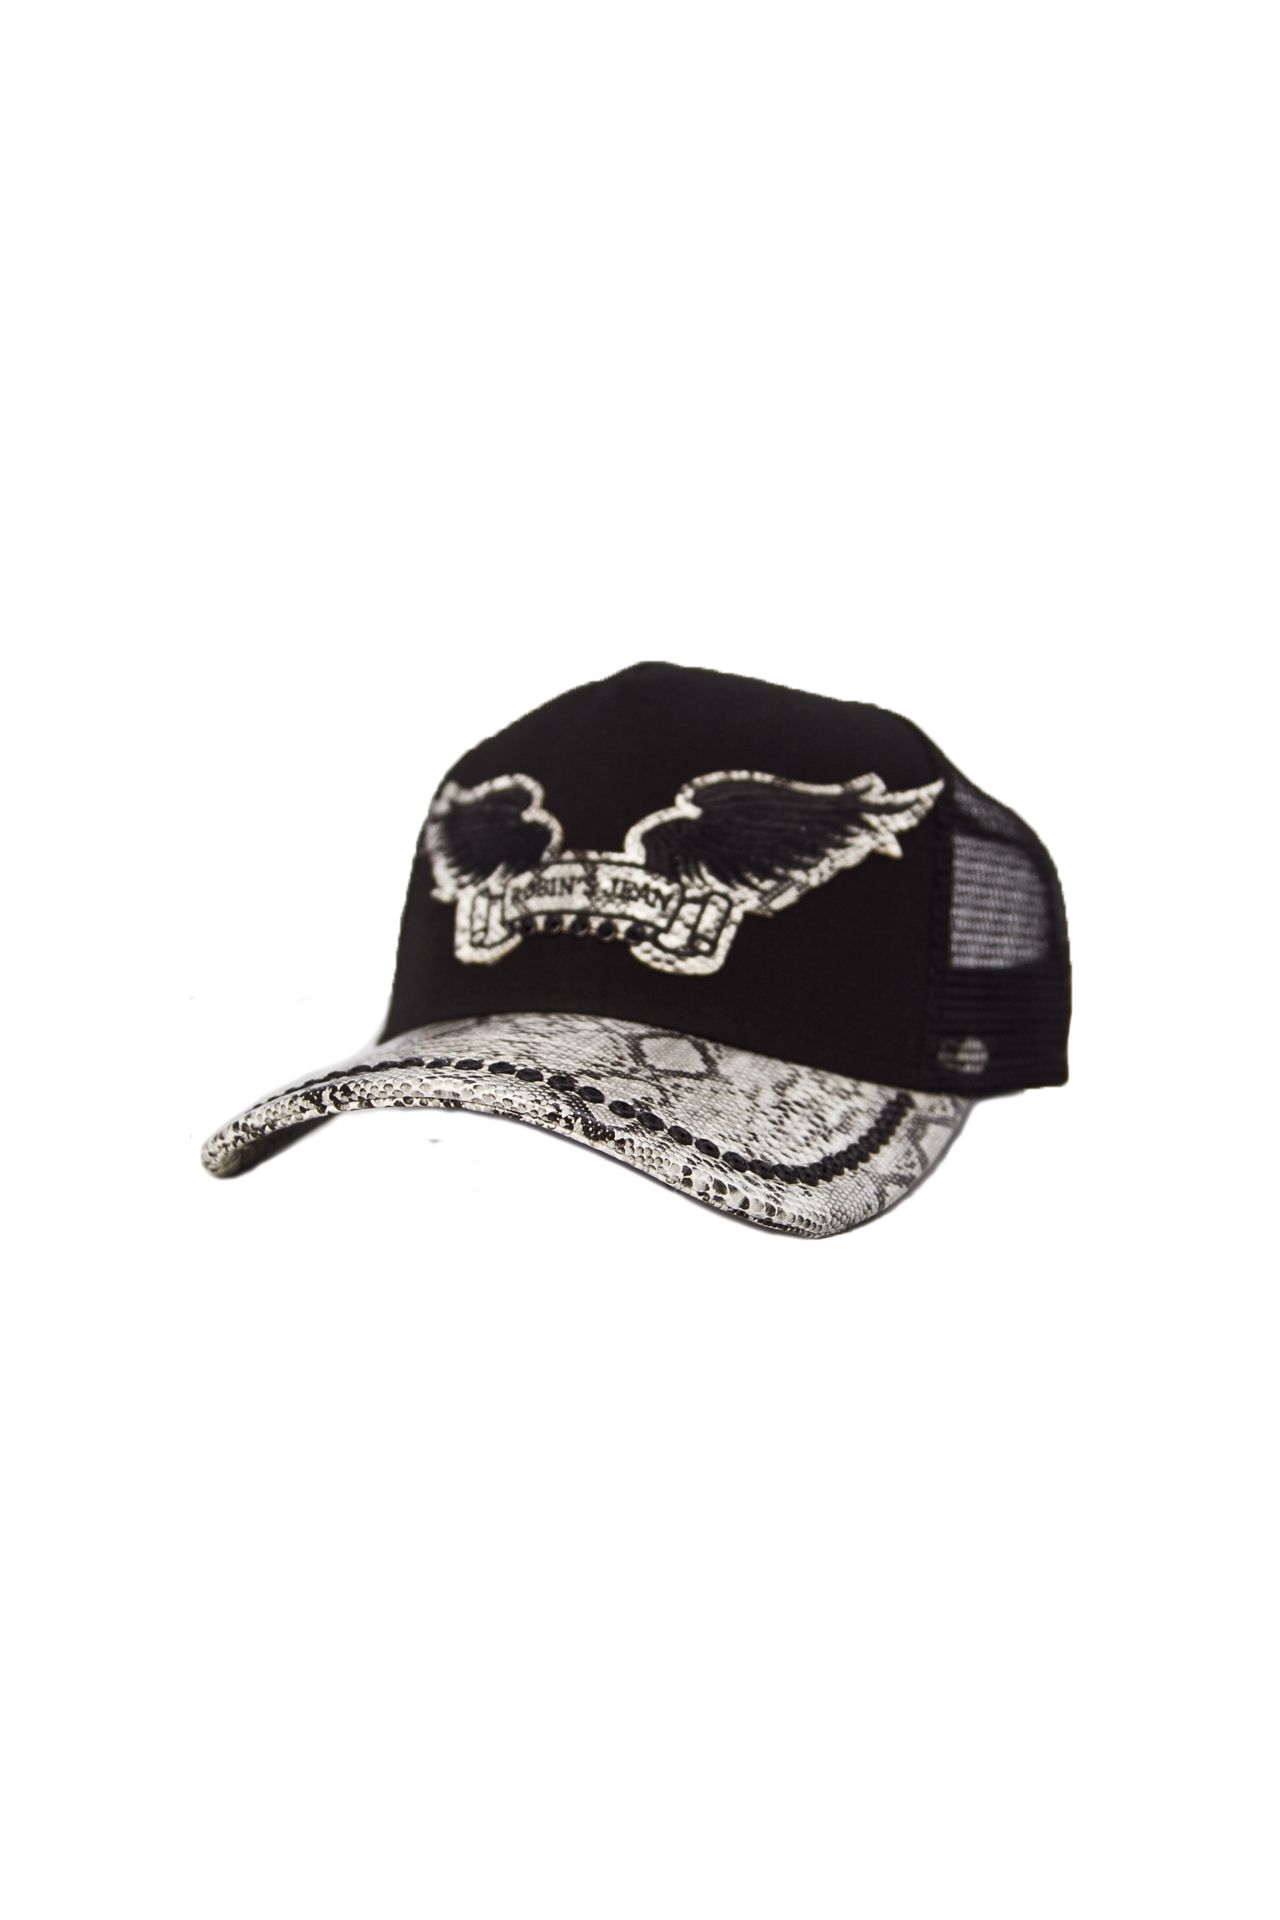 BLACK TWILL CAP WITH WHITE VISOR BLACK CRYSTALS